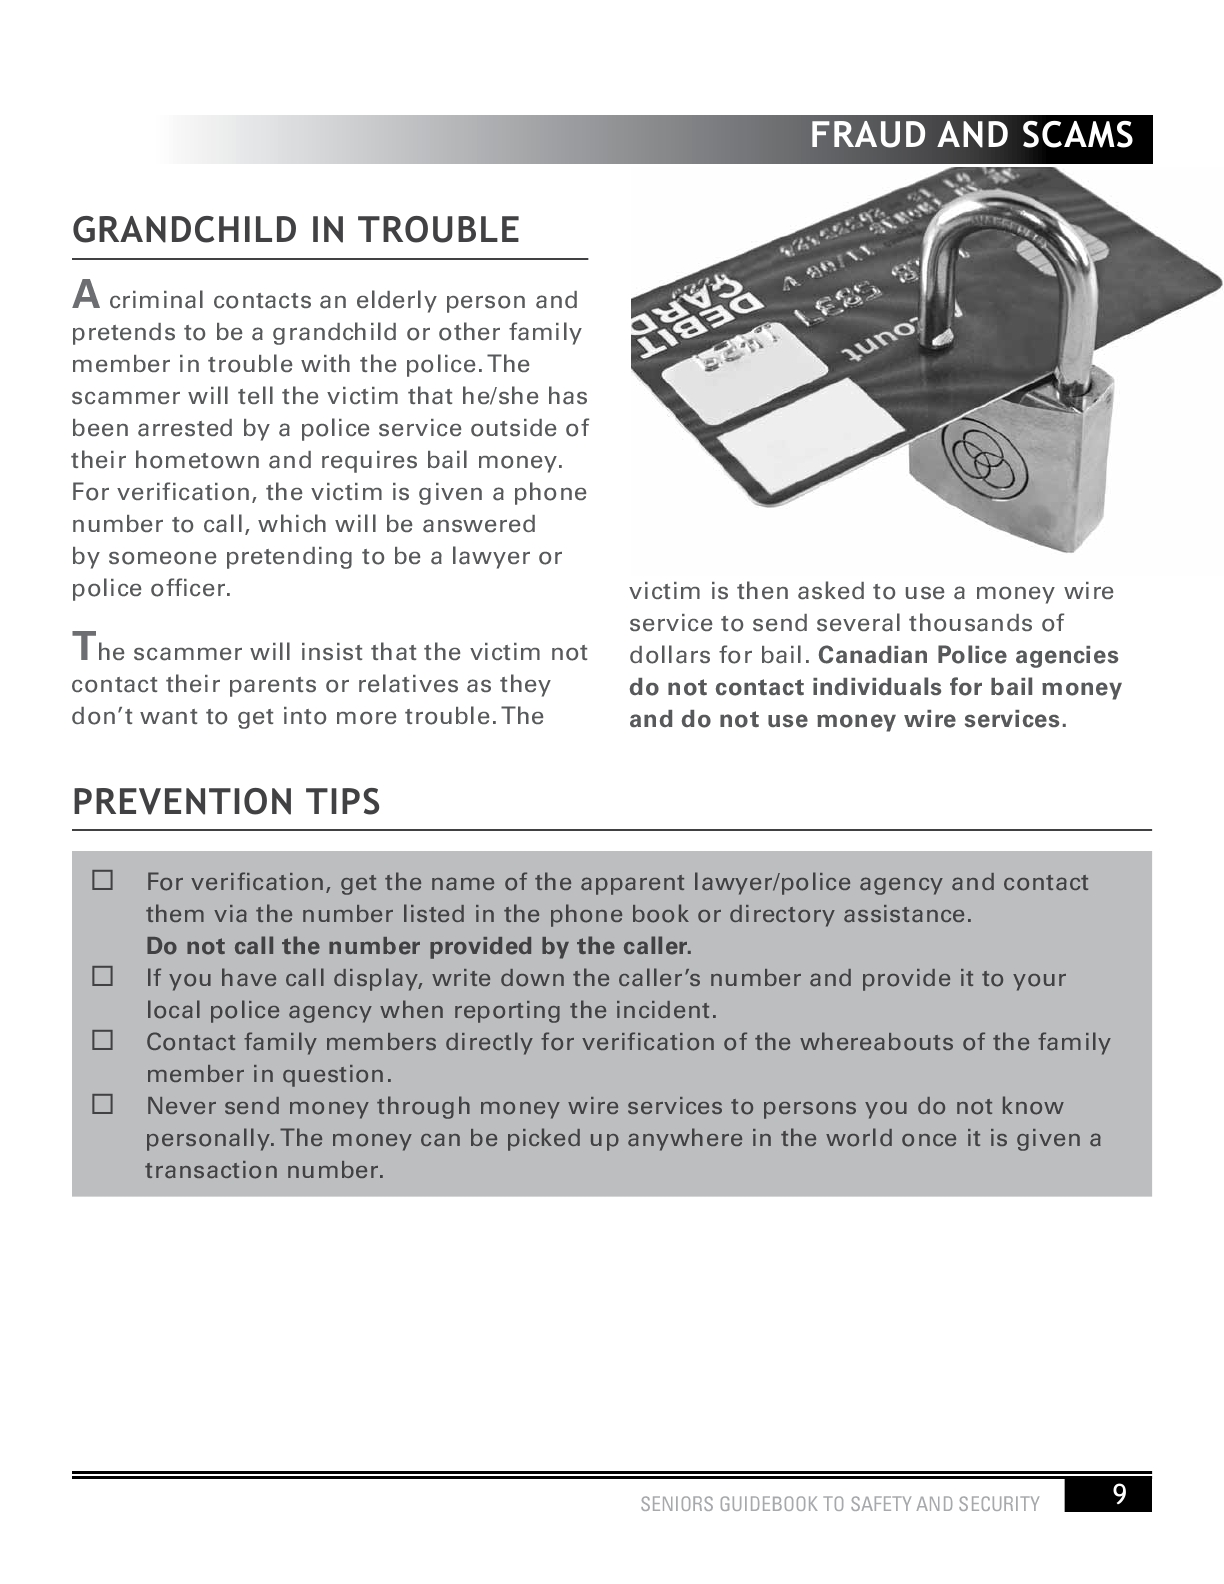 Seniors Guidebook to Safety and Security 11